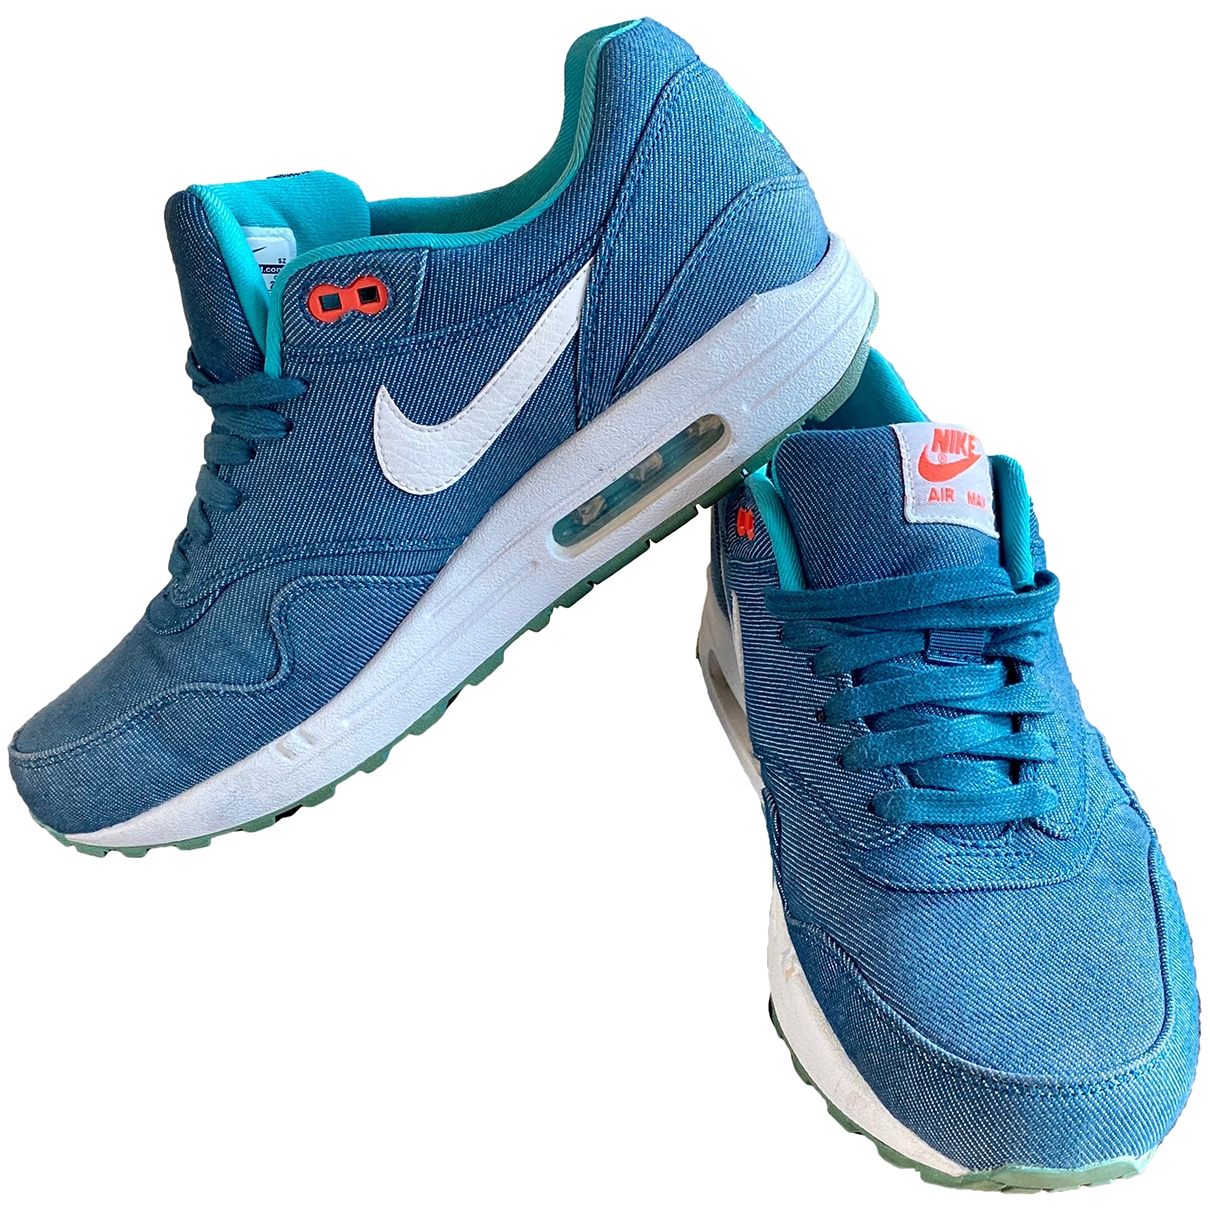 Nike - Baskets Air Max 1 pour homme - turquoise